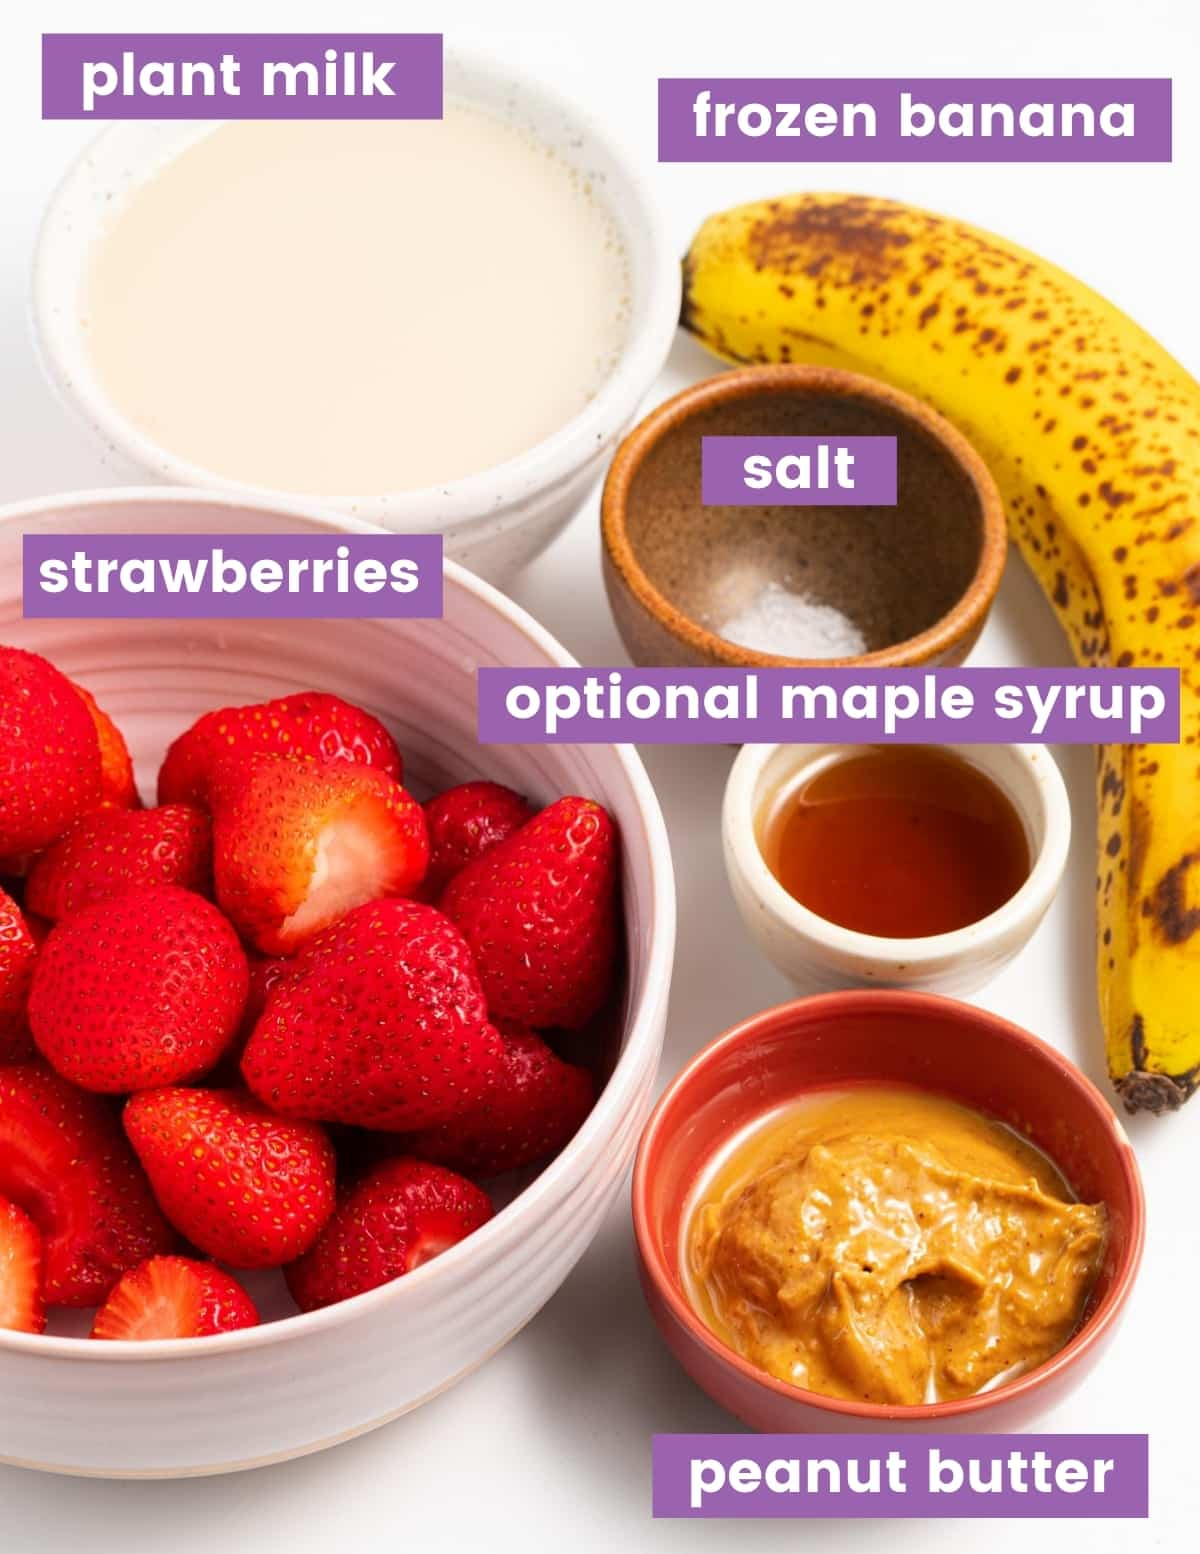 ingredients for smoothie as per the written ingredient list